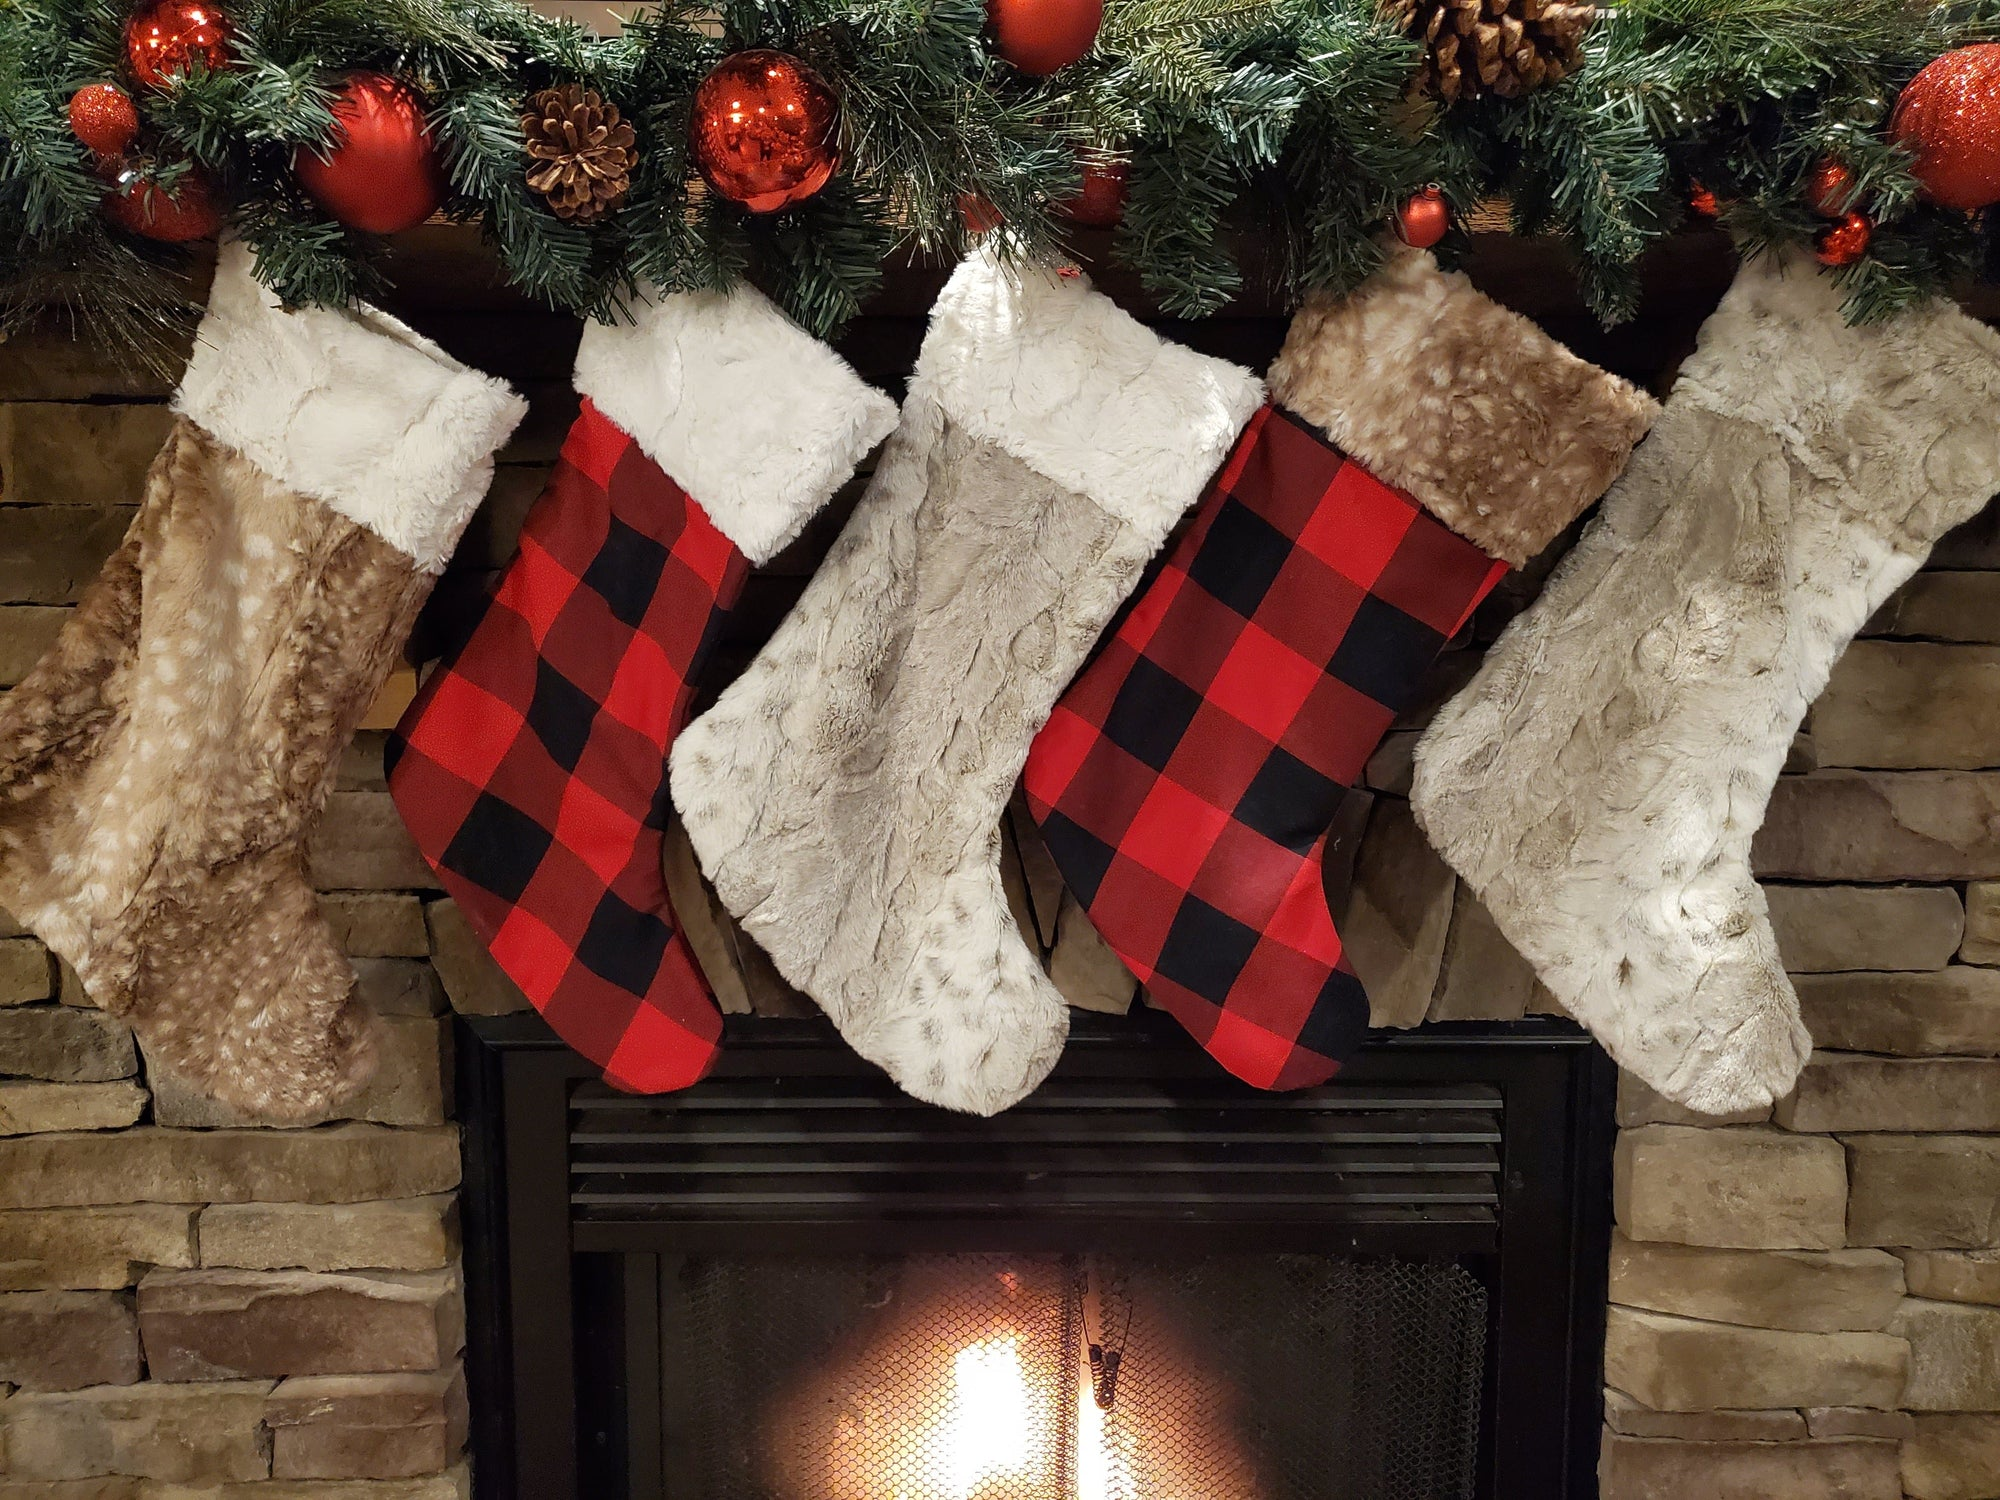 Home Decor - Christmas Stocking - Red Black Check, Lynx Minky, and Fawn Minky Collection